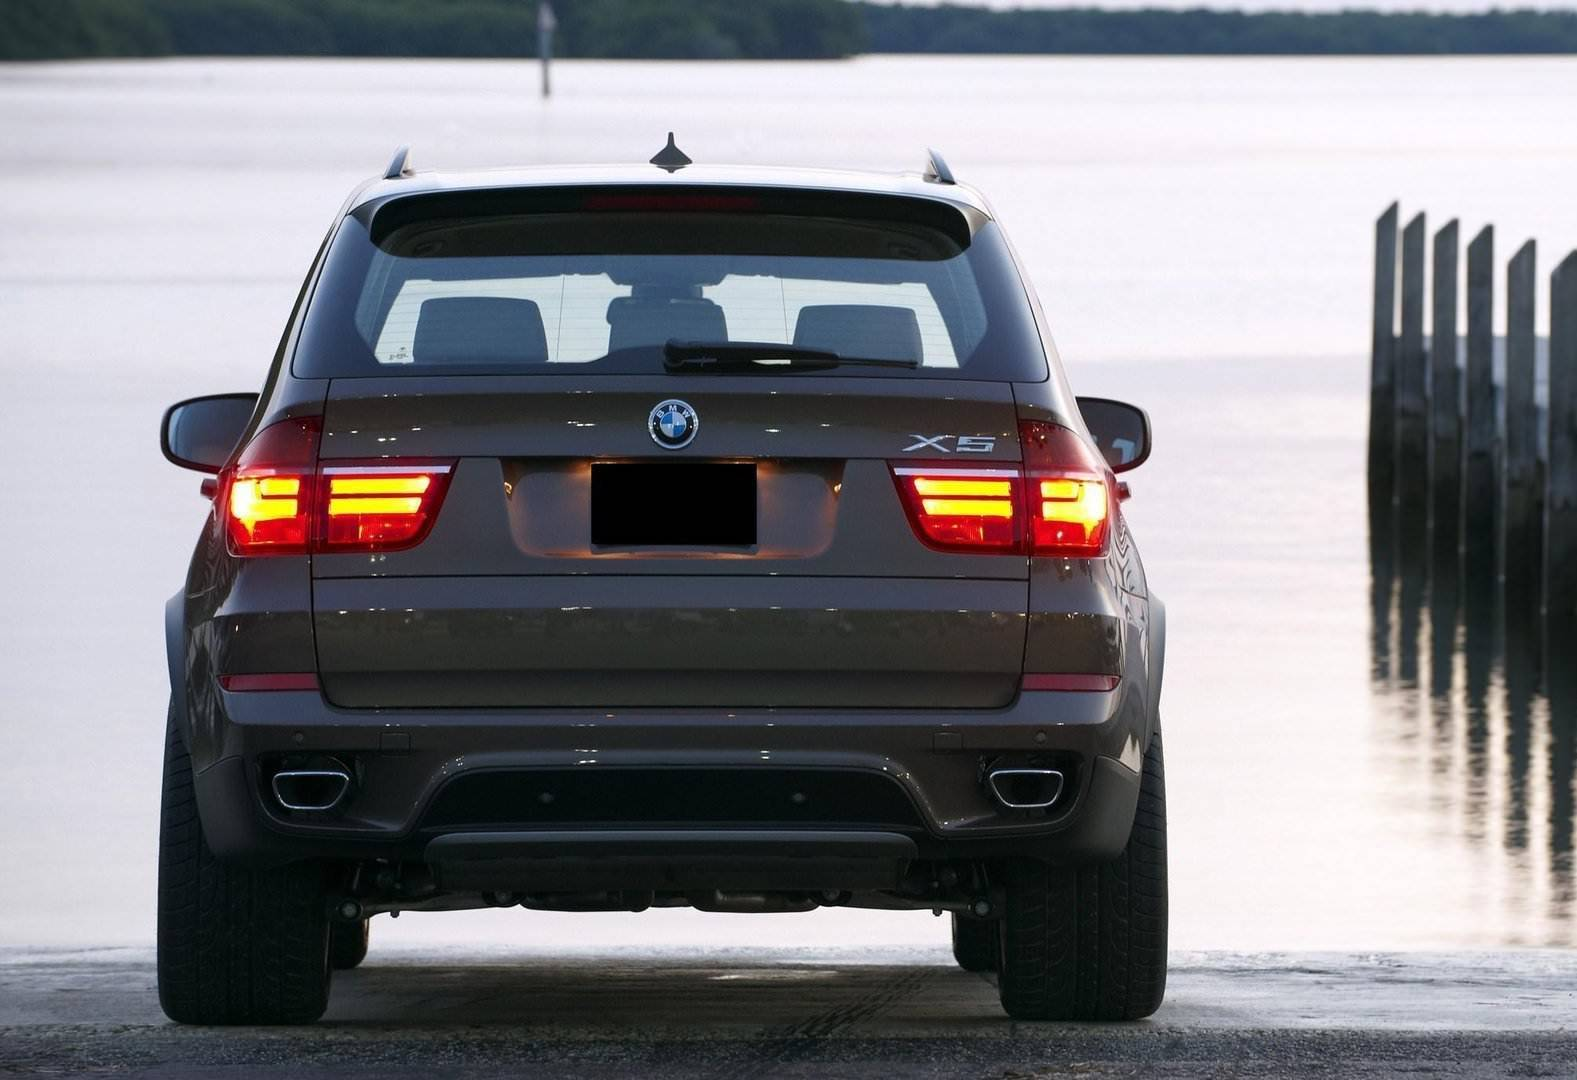 Bmw X5 E70 07 10 Led Taillights Light Bar Lci Facelift Look Red Rear Audi A5 To Tail Lights Adaptor Wiring Automotive Set Return Previous Page Zoom Images